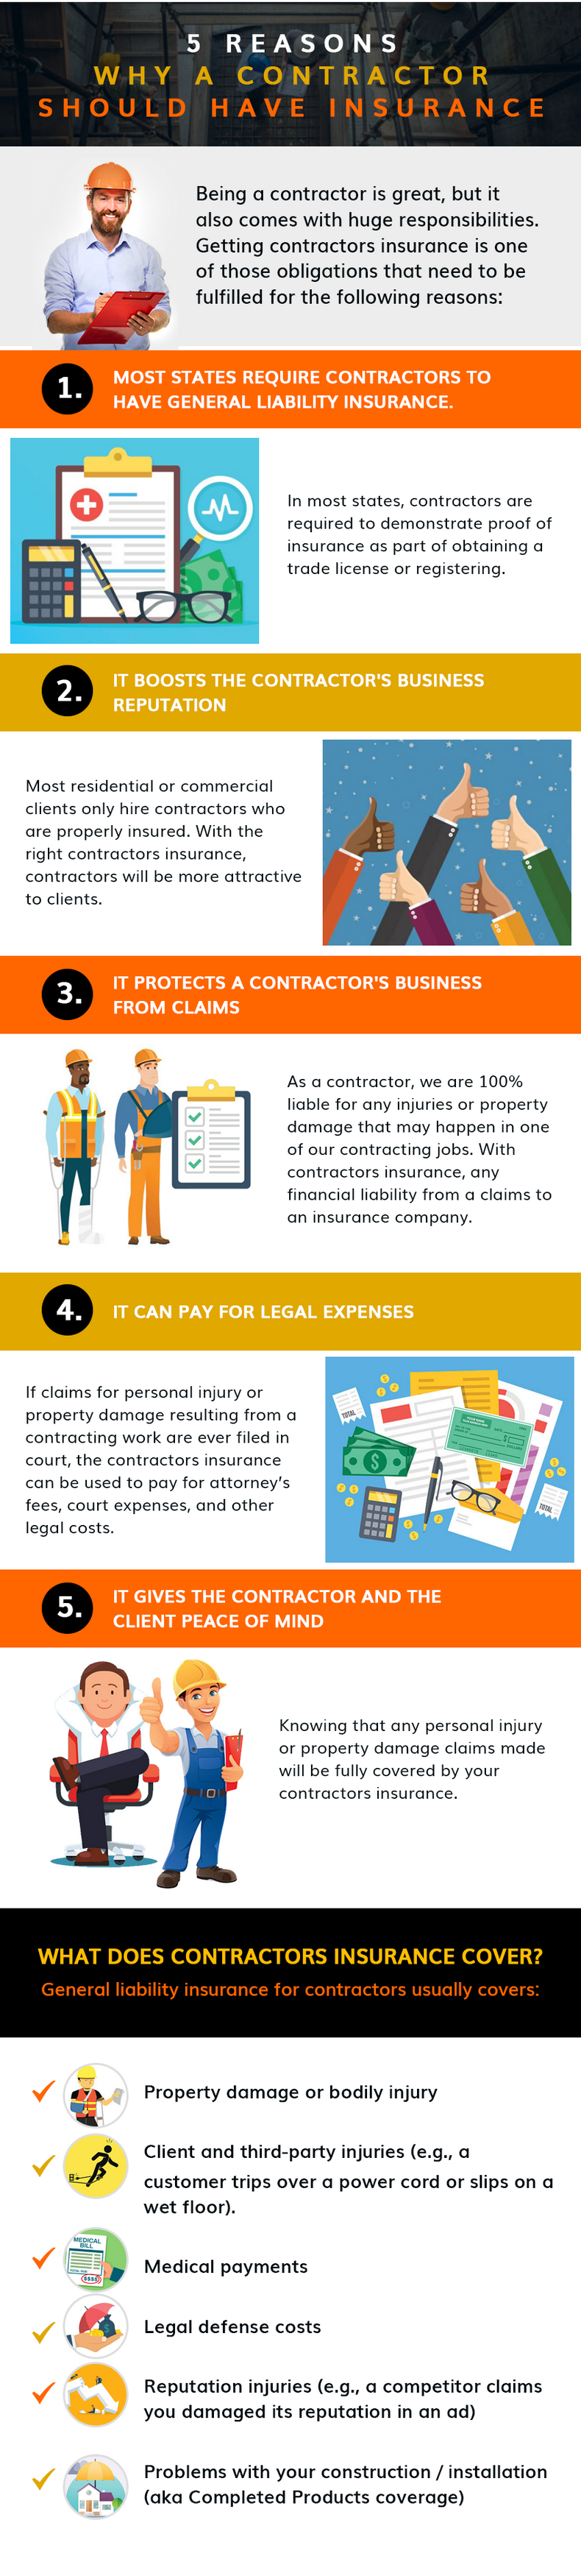 infographic - why a contractor should have insurance